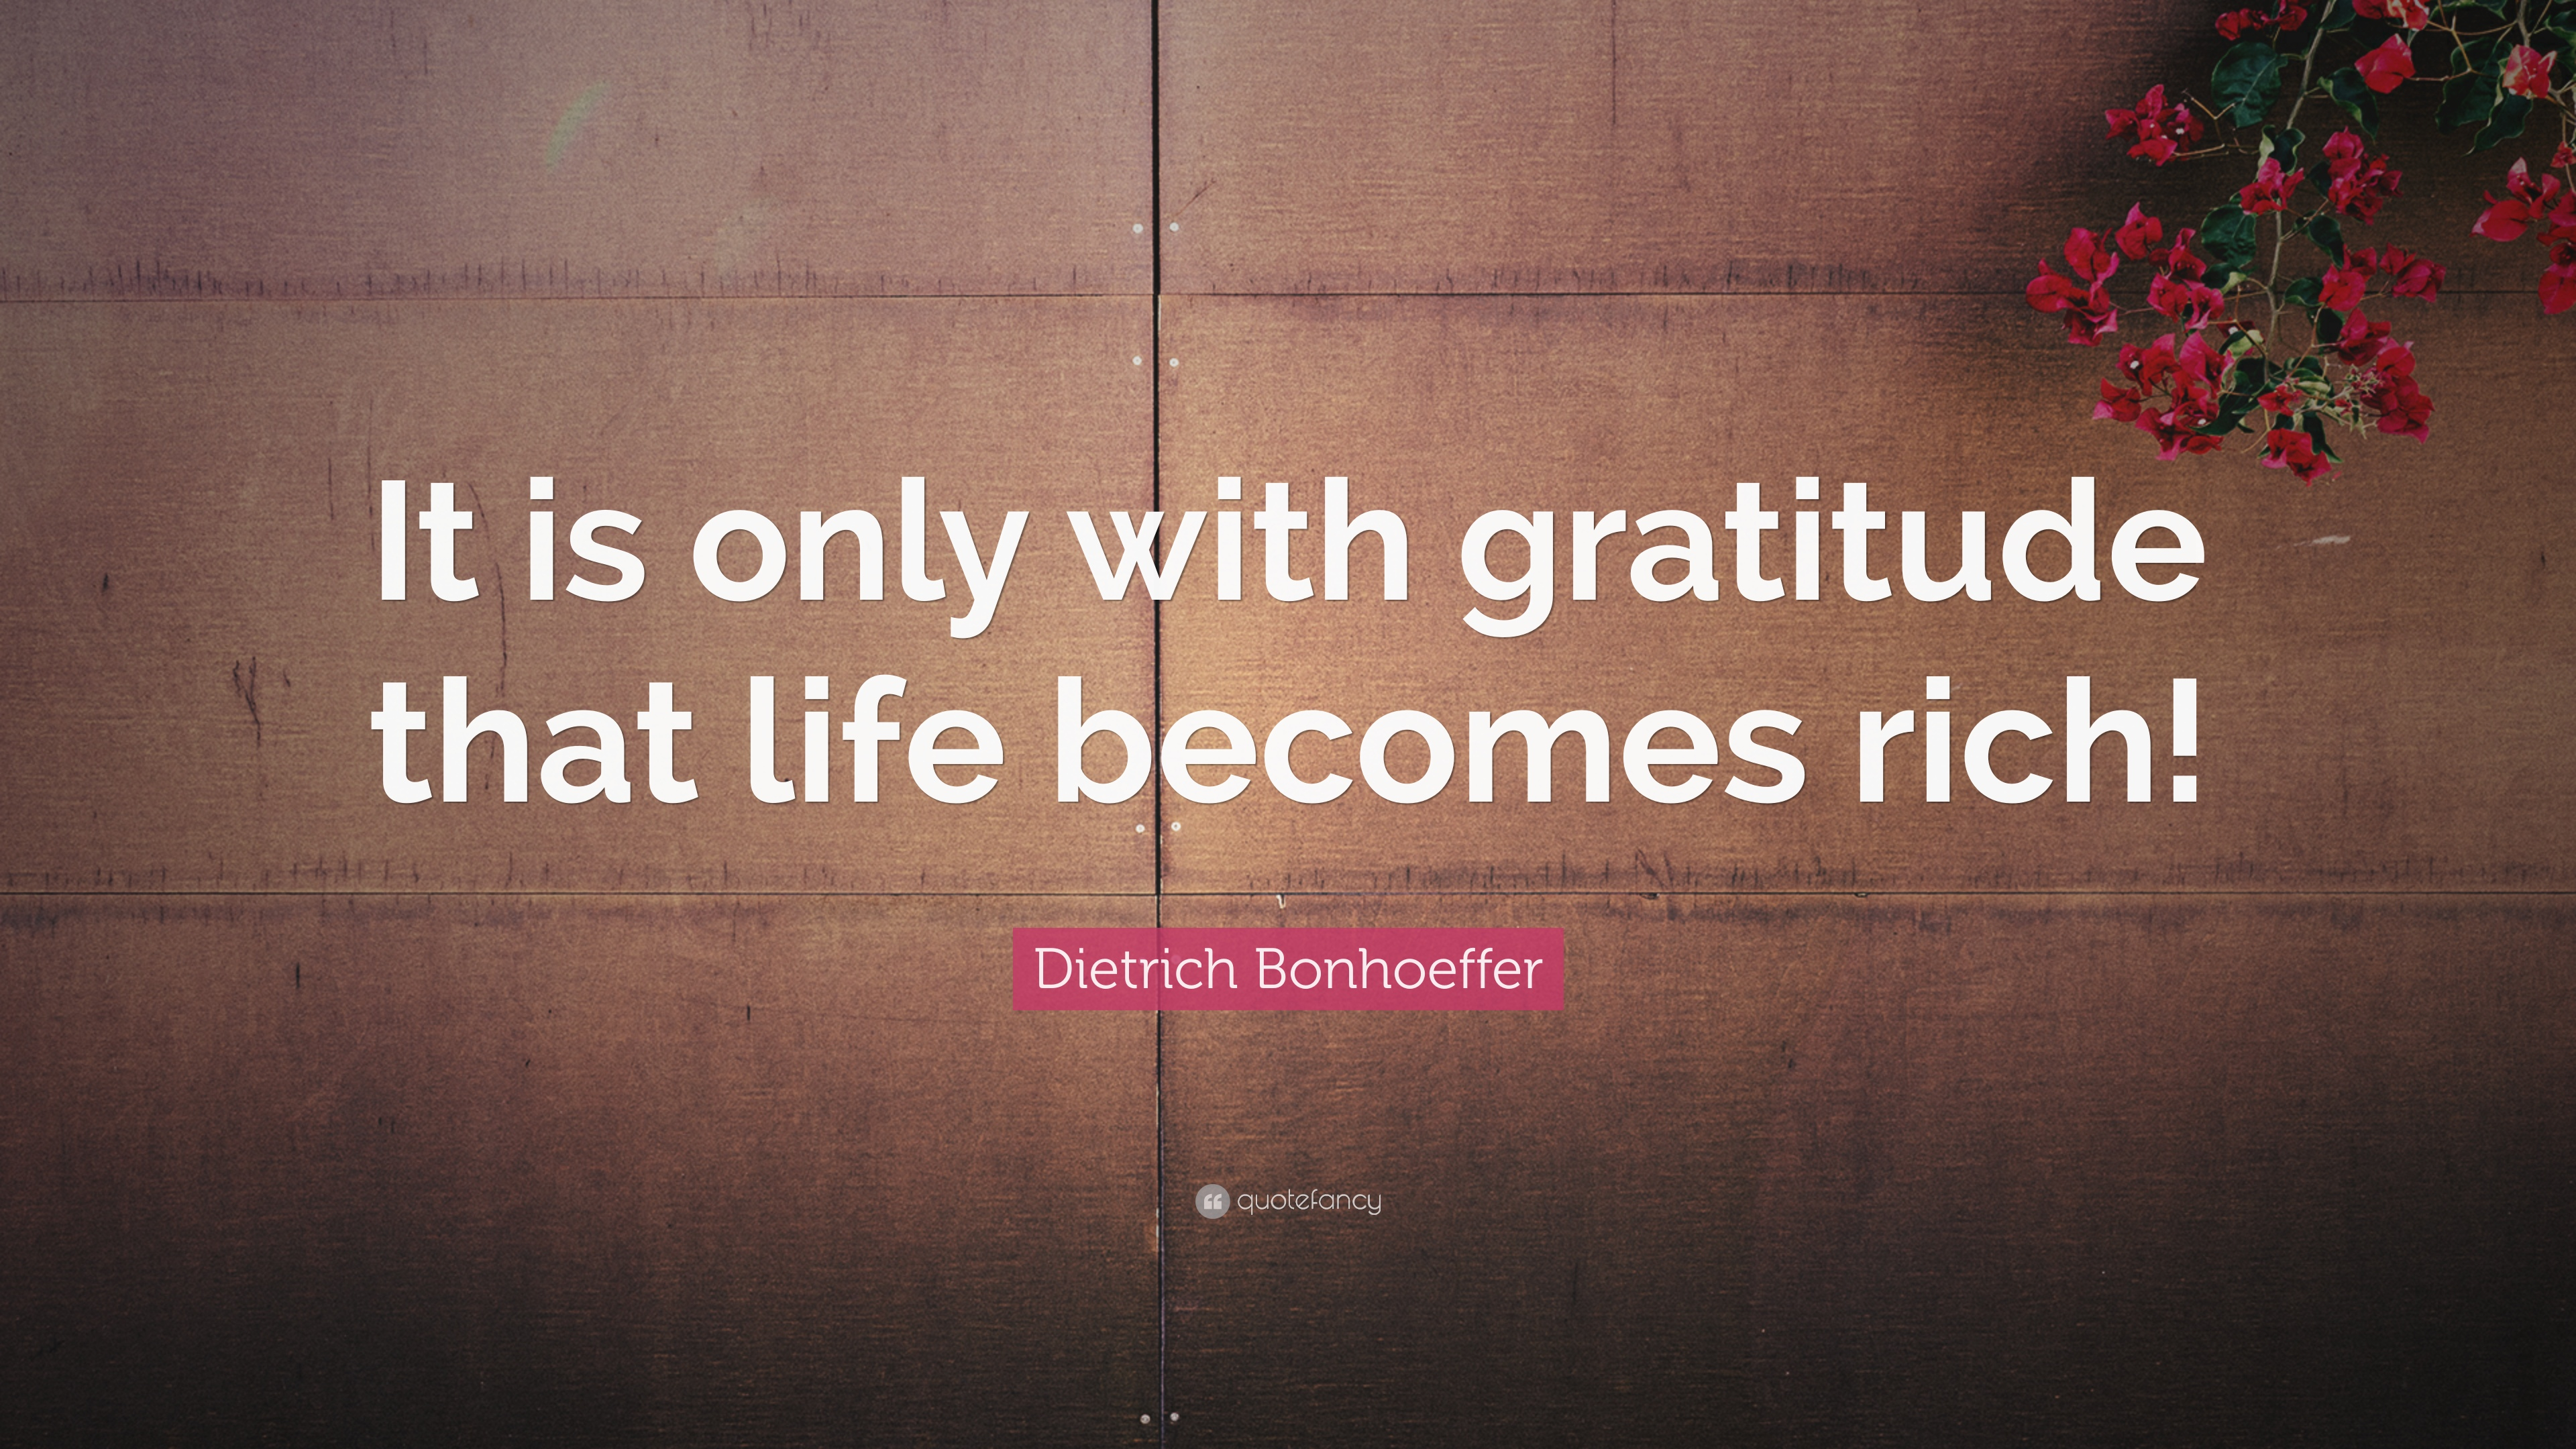 Attractive Gratitude Quotes: U201cIt Is Only With Gratitude That Life Becomes Rich!u201d U2014